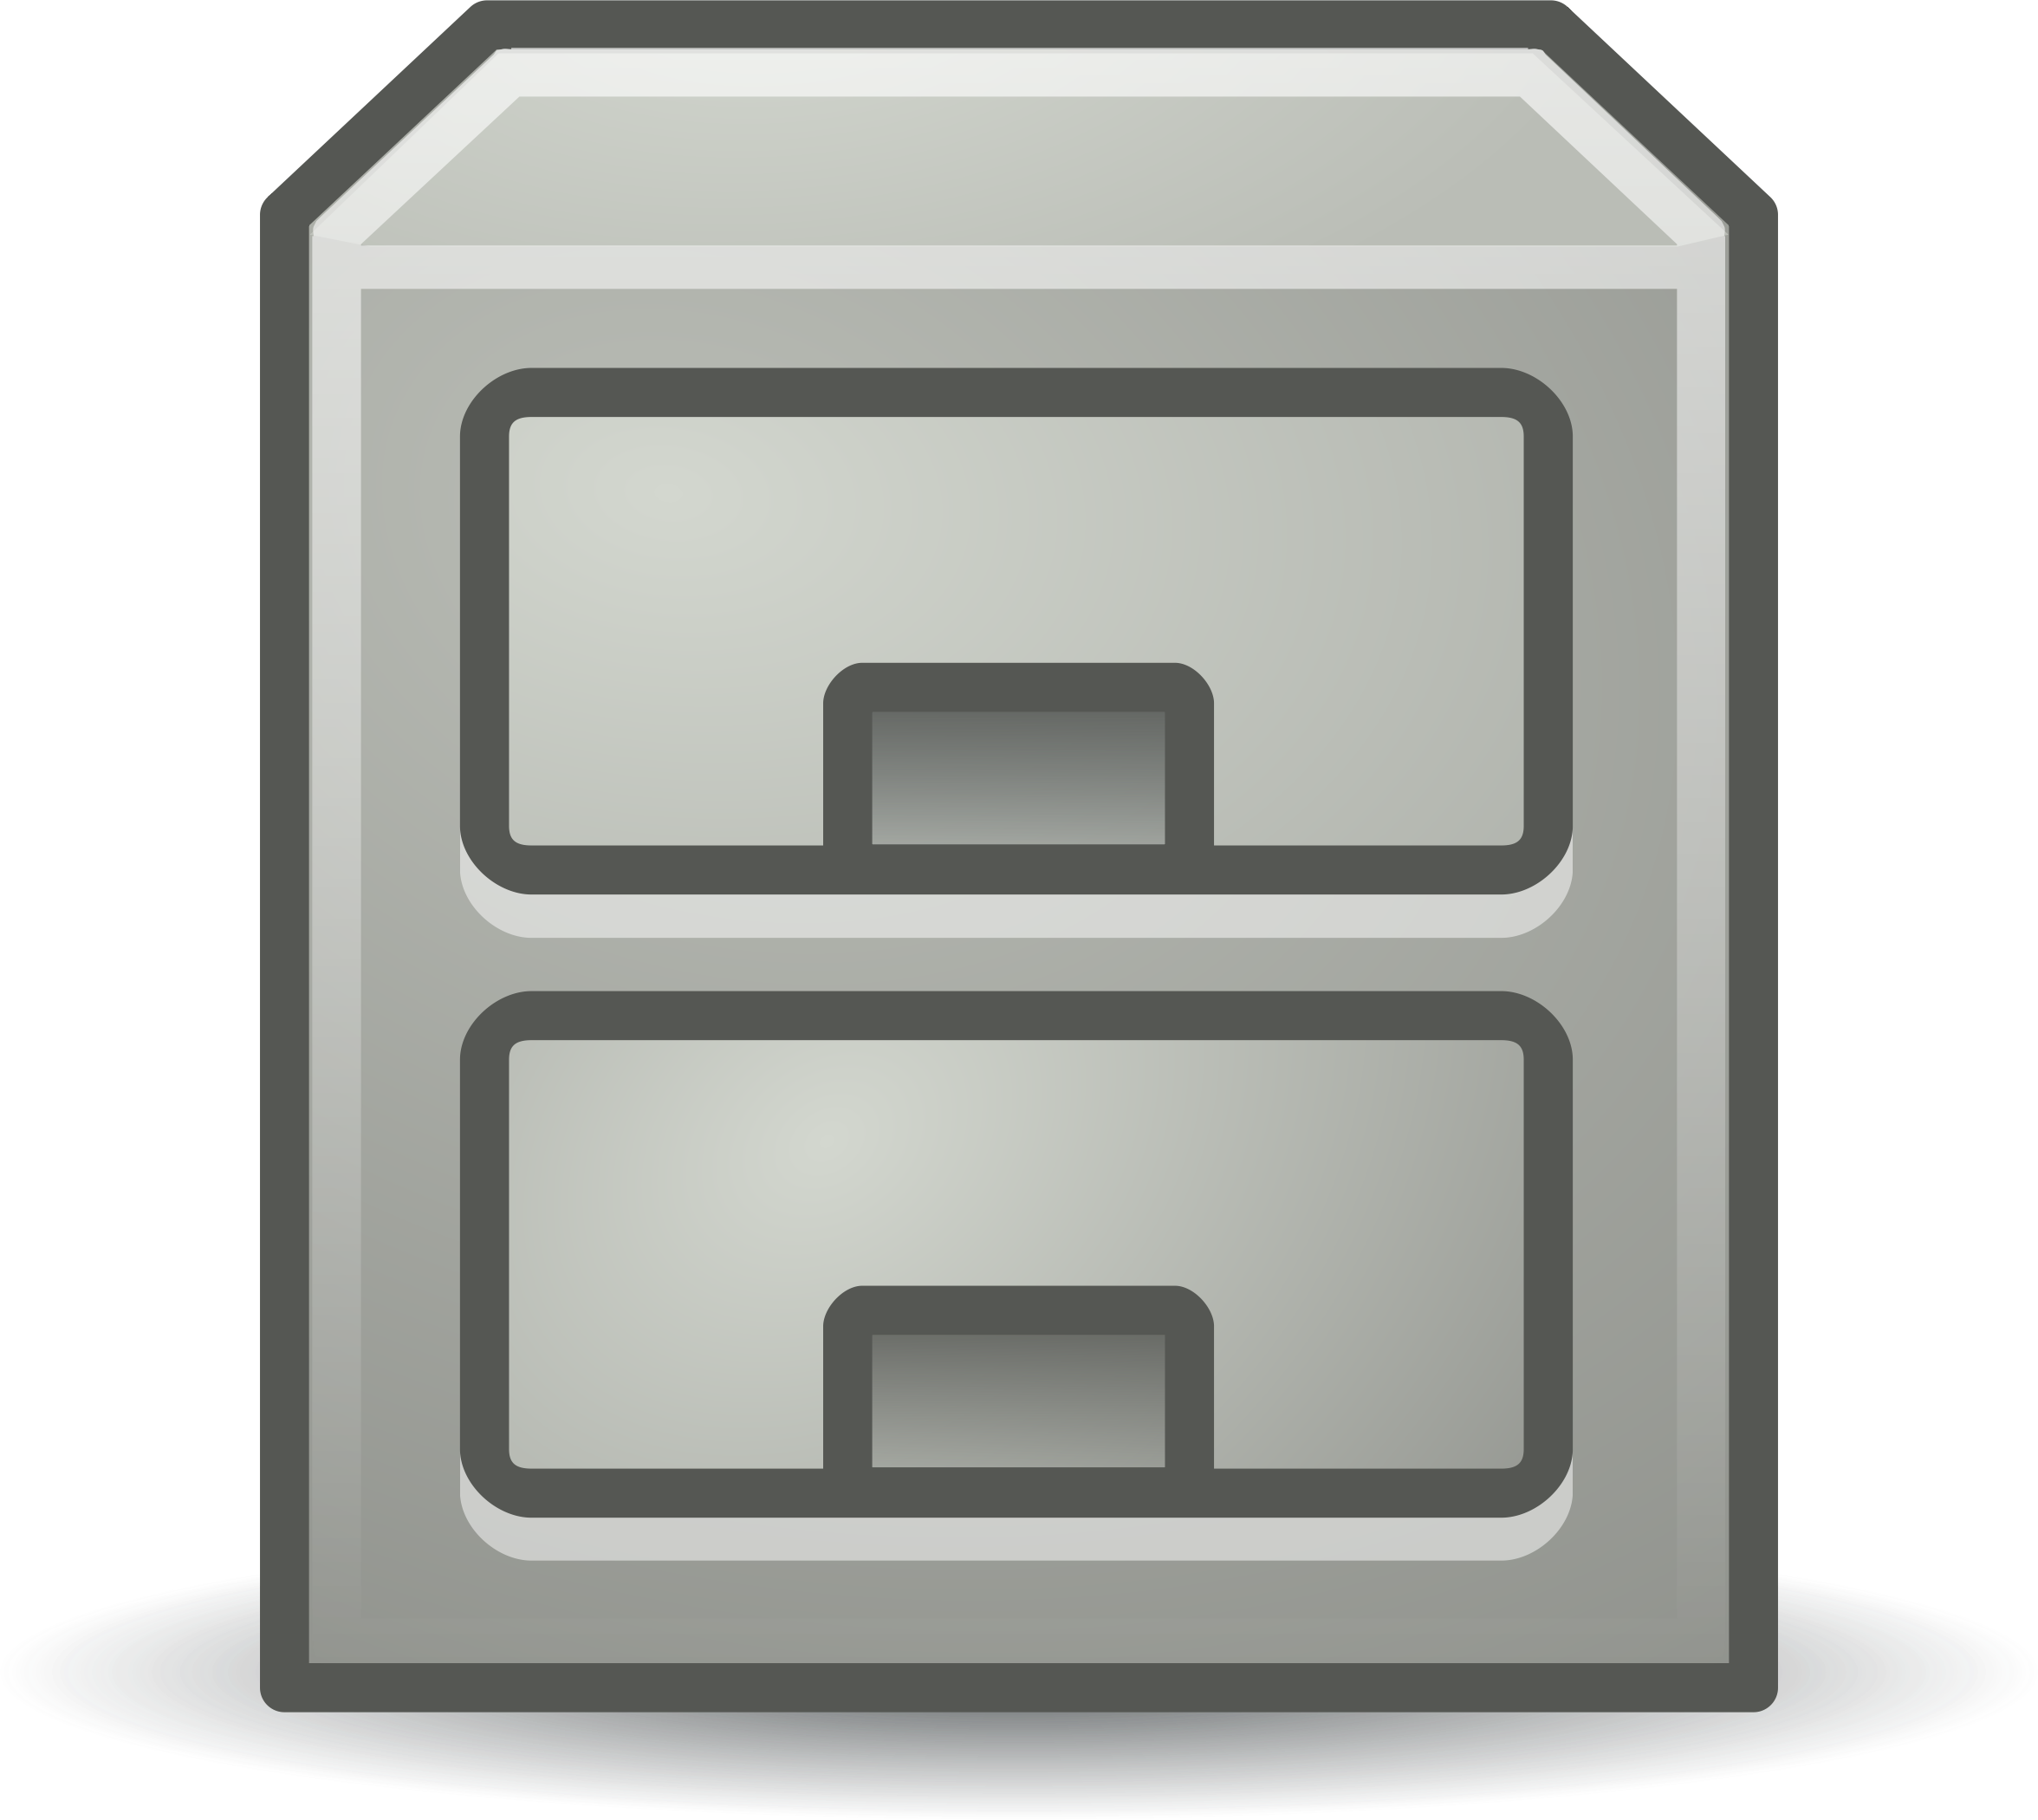 file manager by sixsixfive